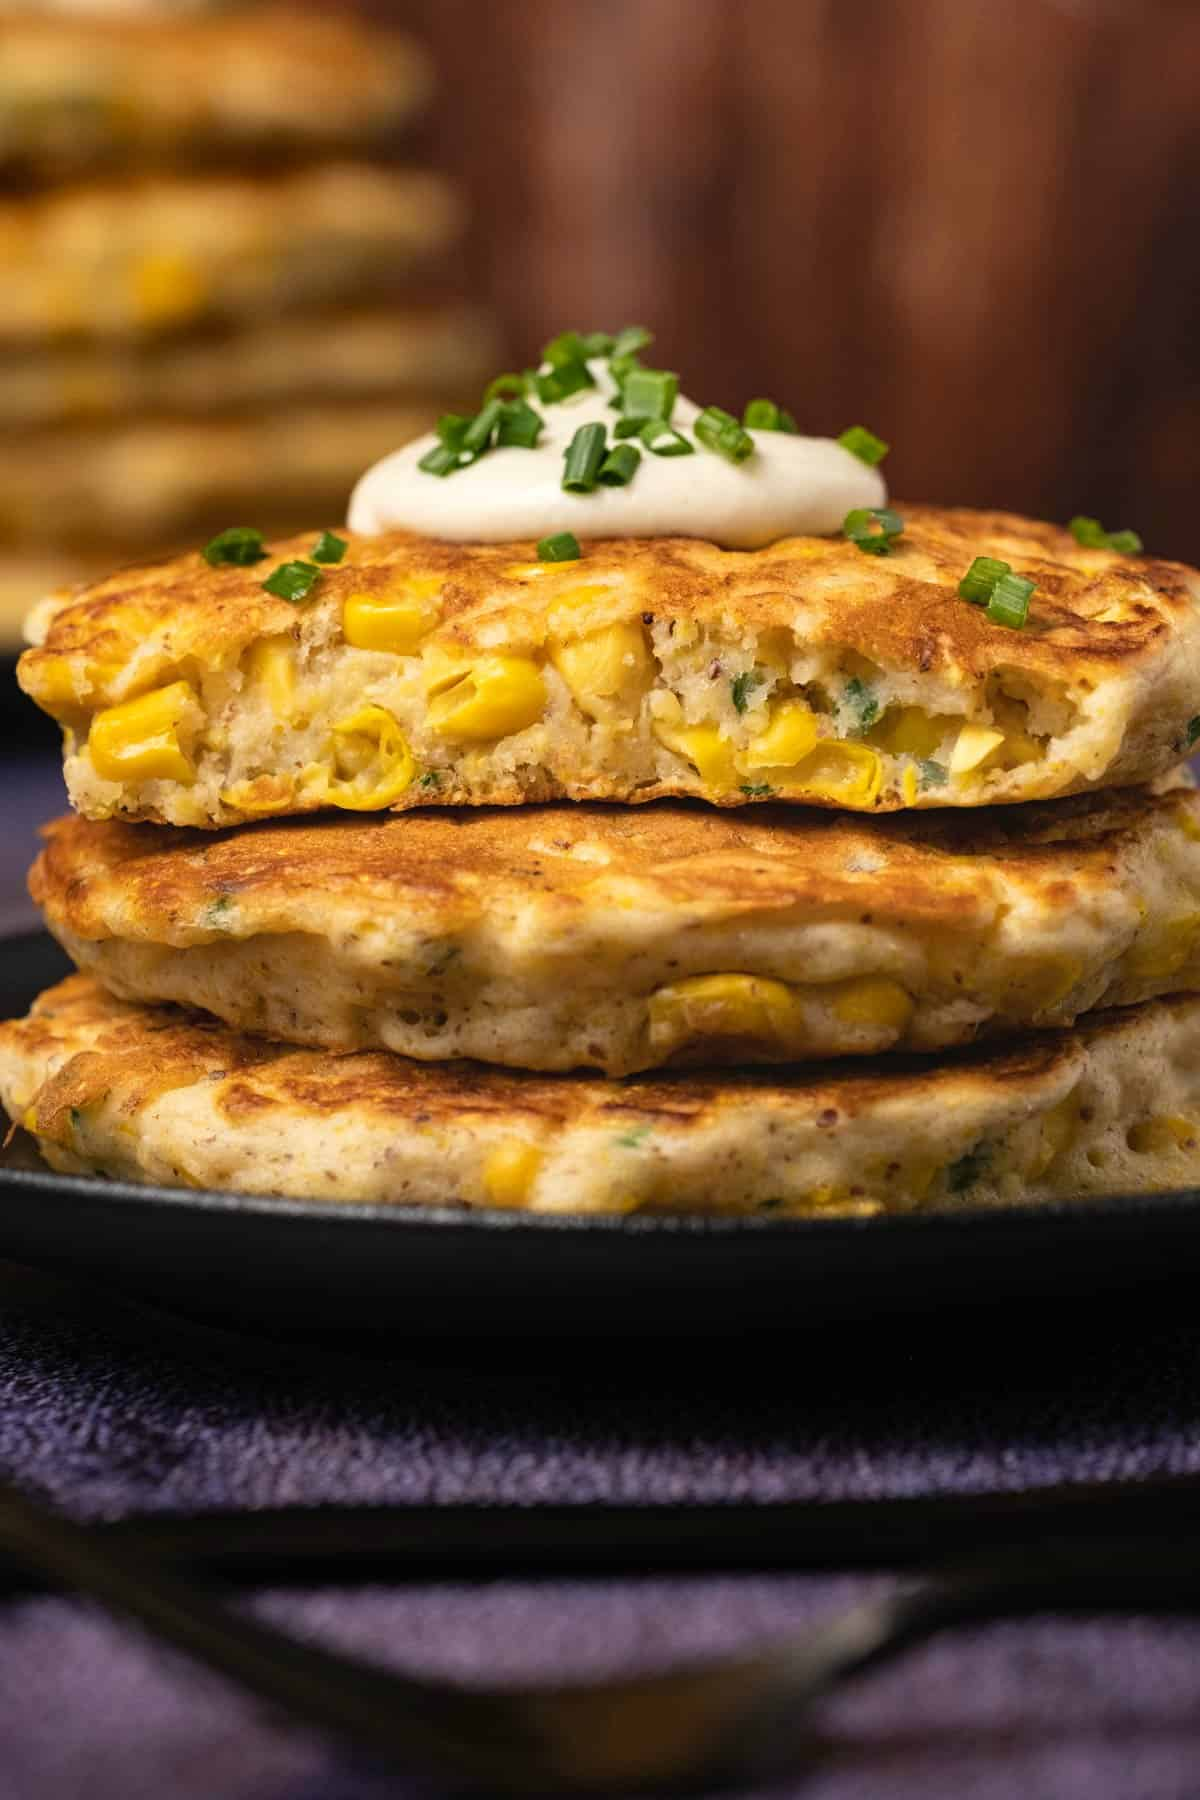 Stack of corn fritters on a black plate, the top fritter cut in half to show the center.